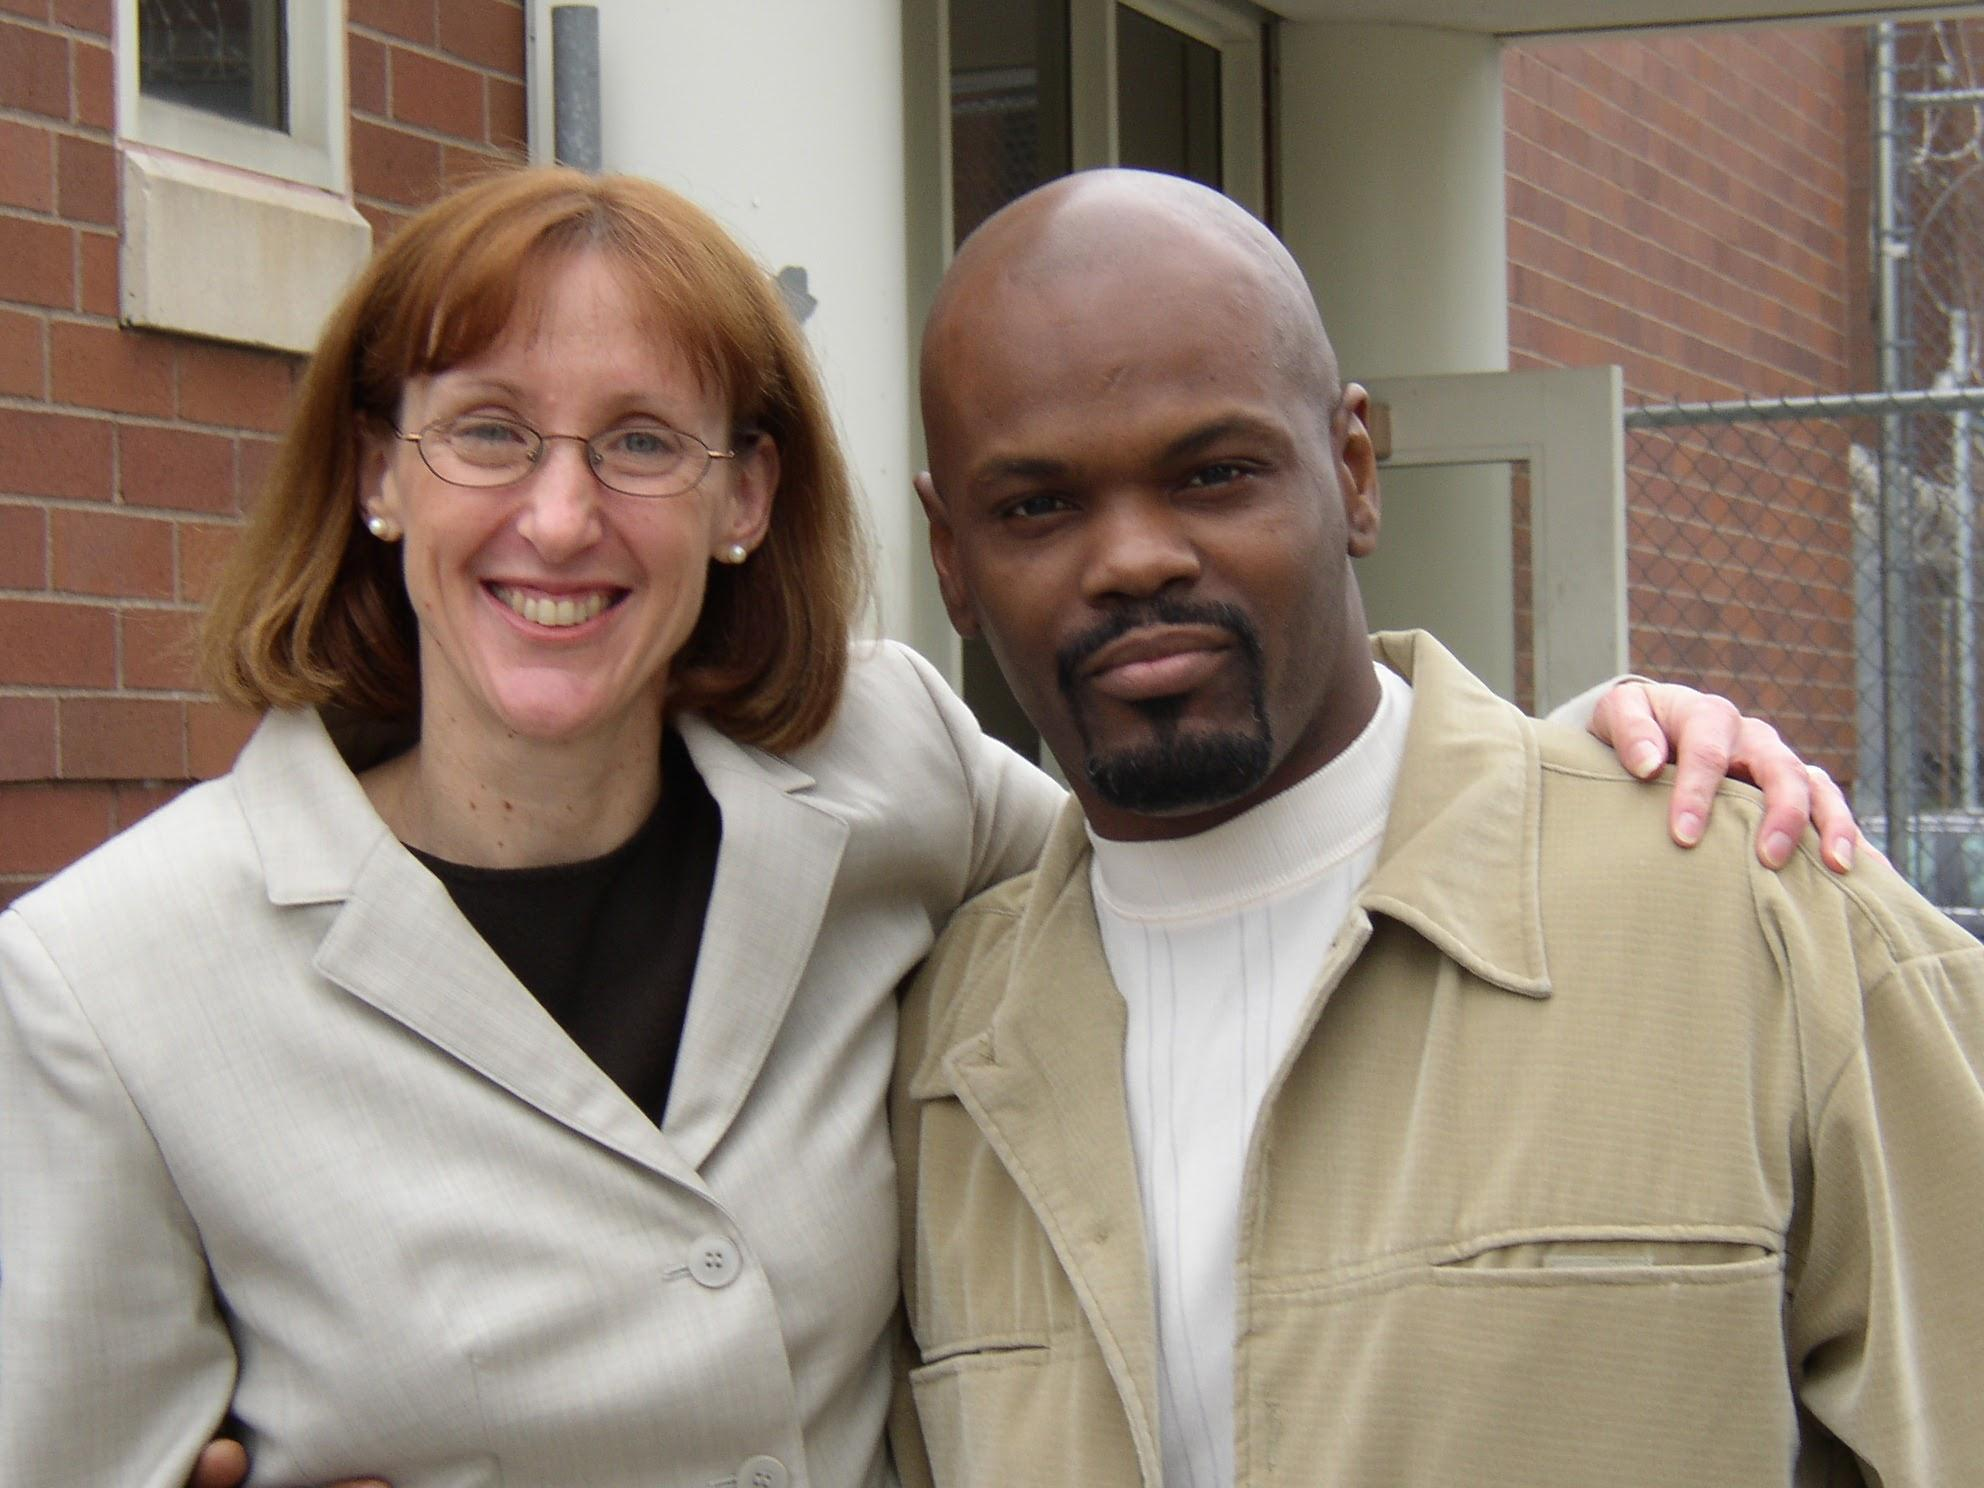 Karen Daniel poses with Dana Holland on June 6, 2003, the day he was released from prison. (Courtesy of Karen Daniel / Center on Wrongful Convictions)